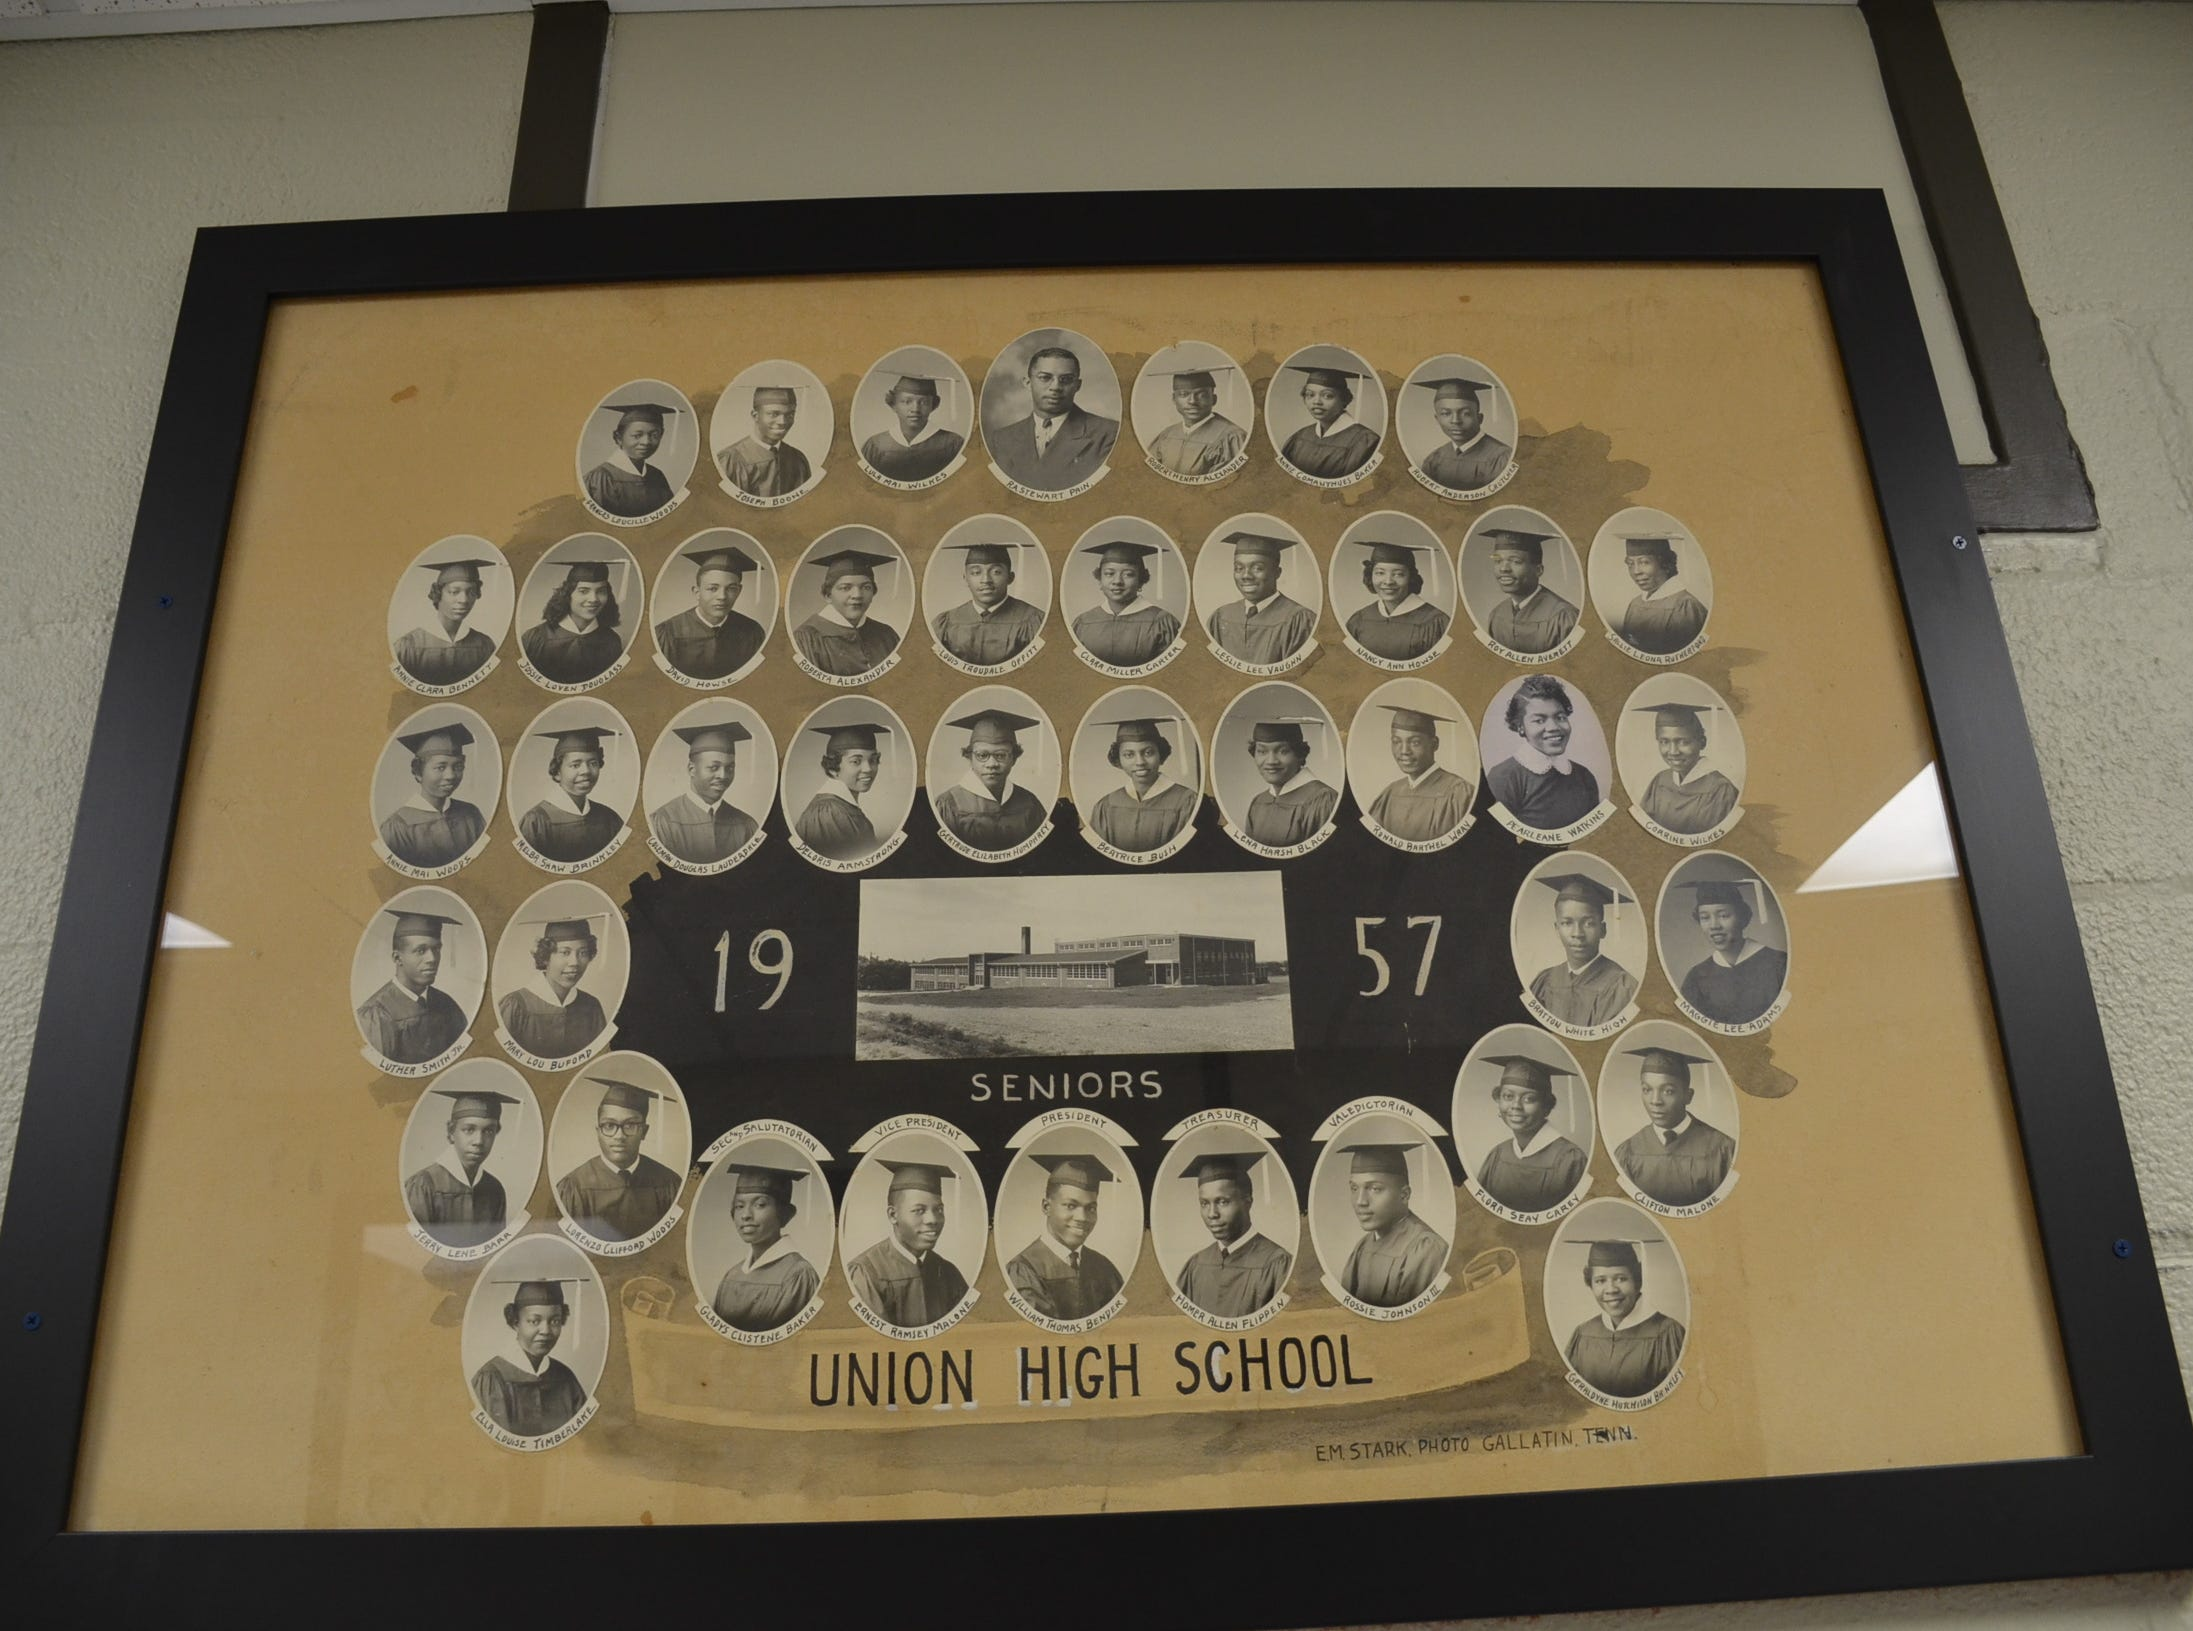 This display shows the Class of 1957 at Union High School in Gallatin.